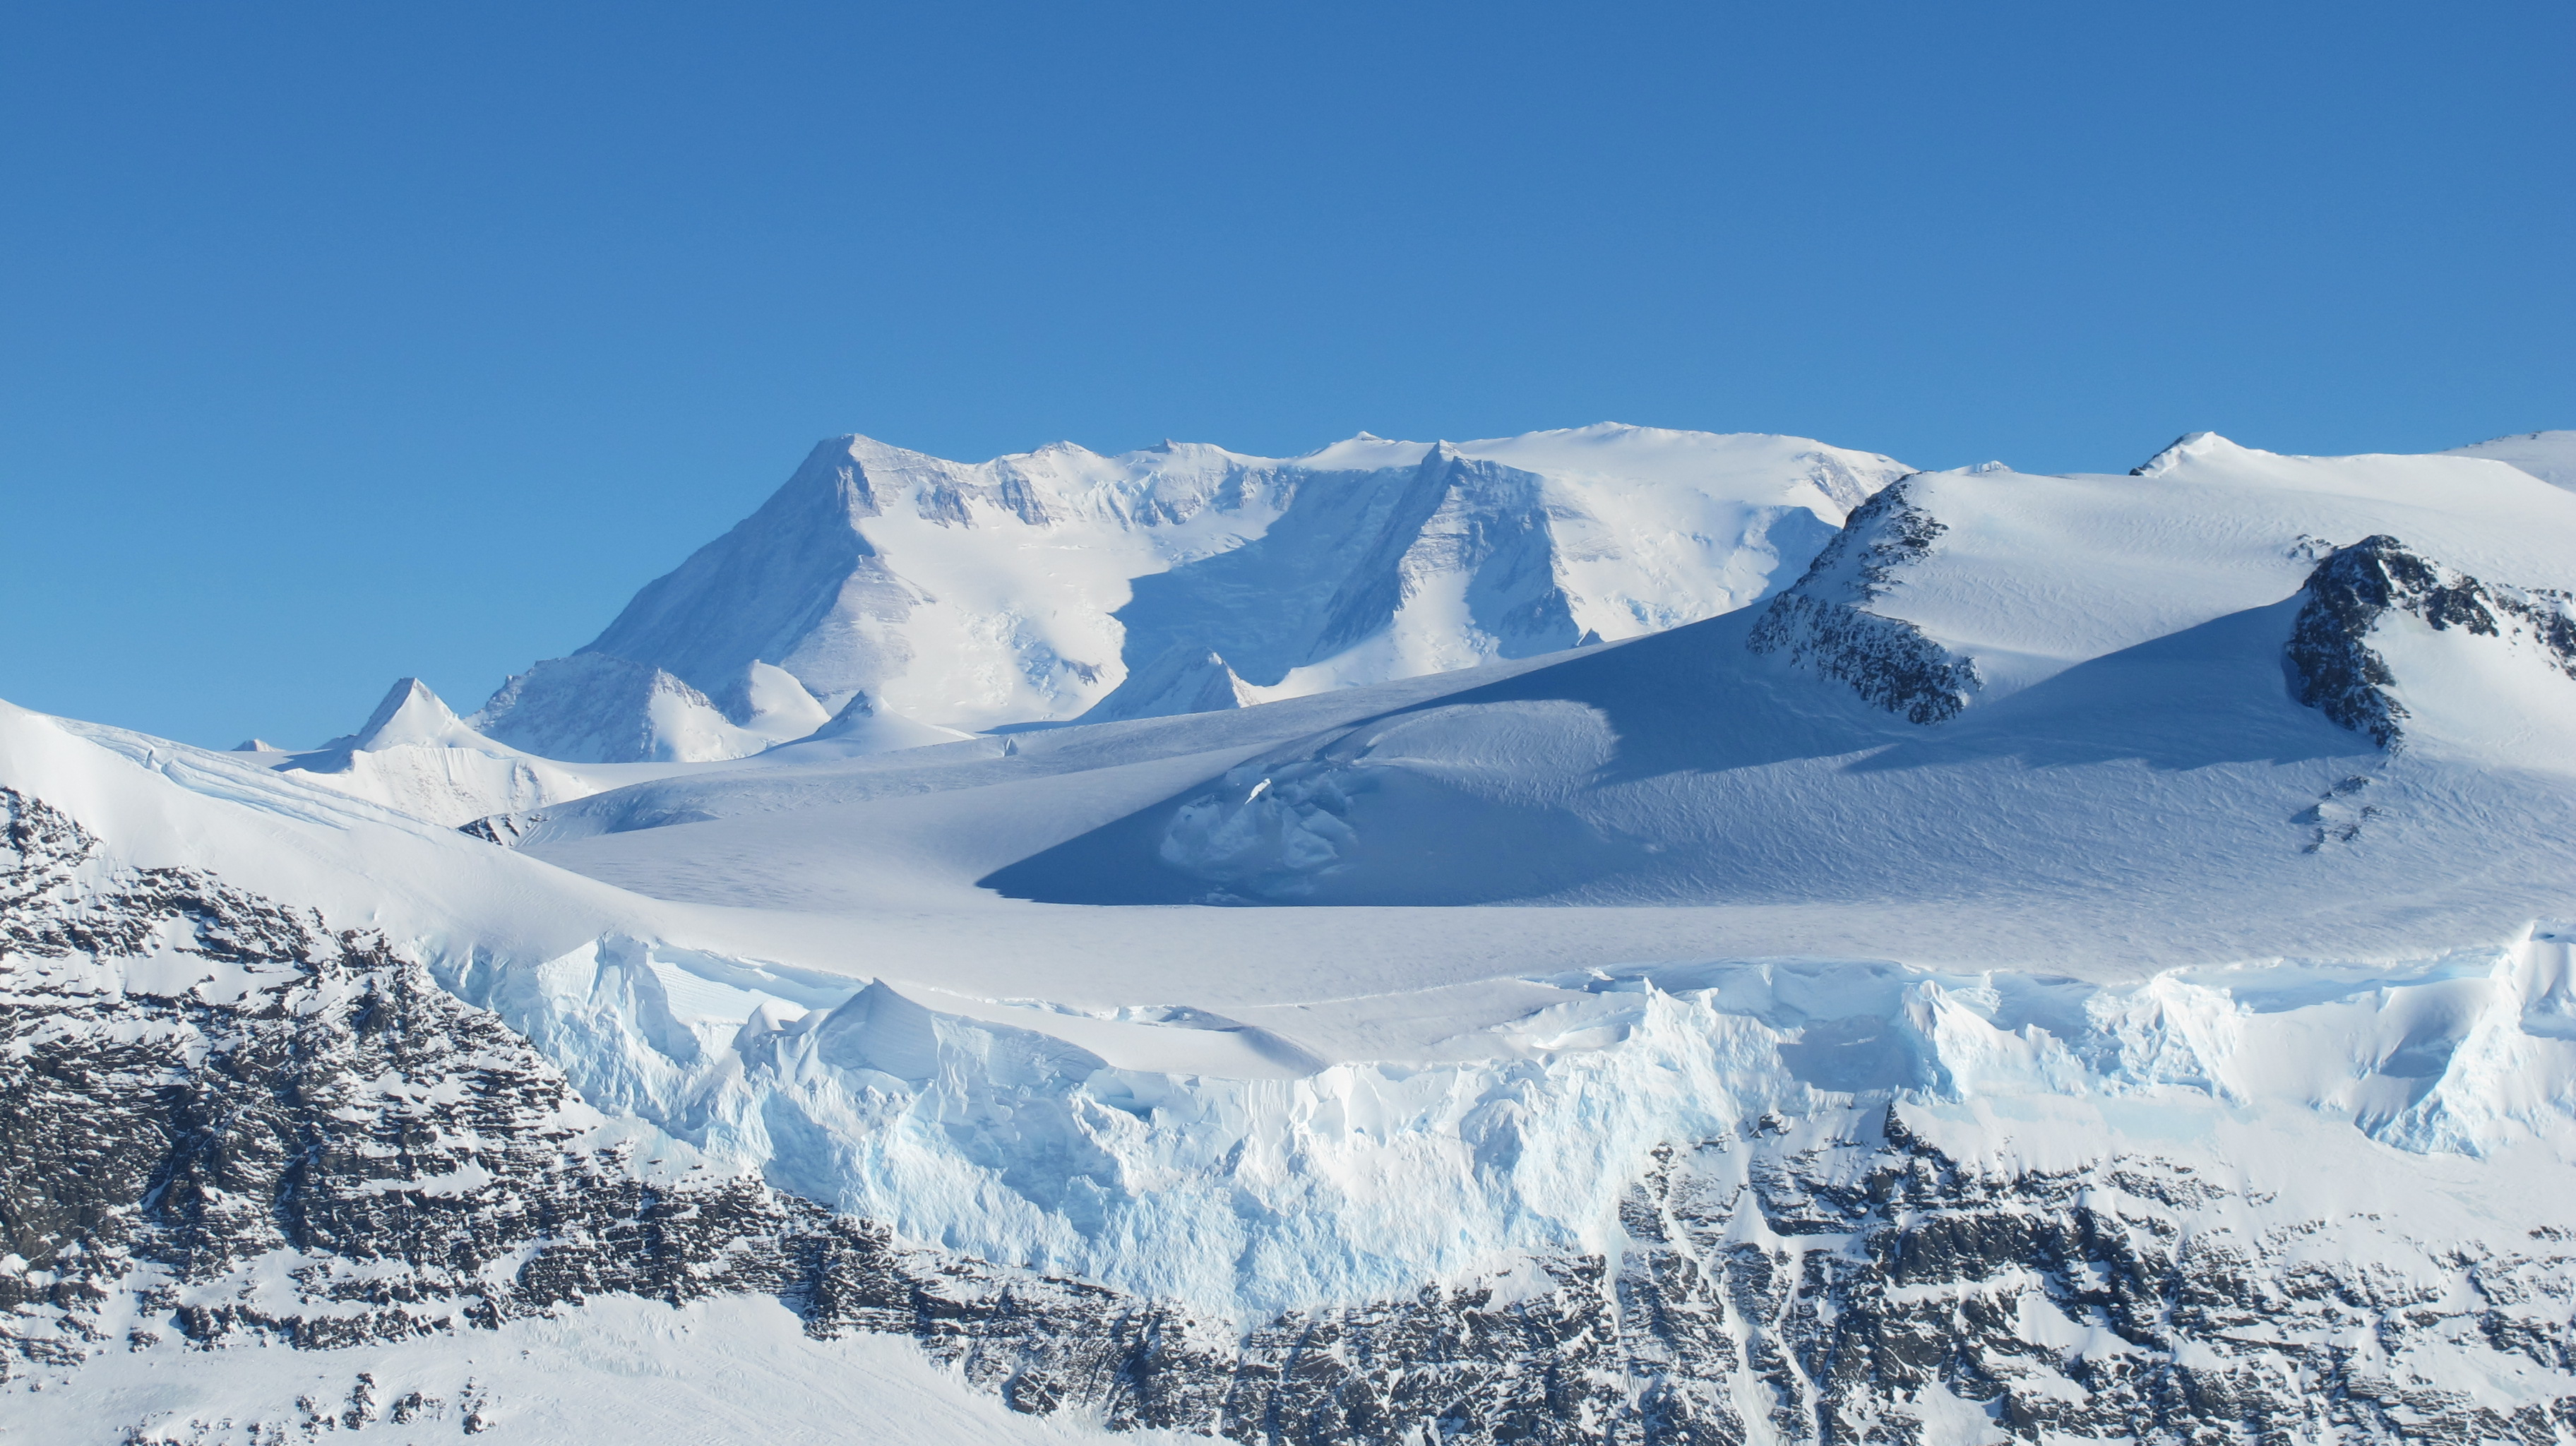 Ice on the Ellsworth Range in Antarctica as seen from the IceBridge DC-8 on Oct. 22, 2012. Credit: NASA / James Yungel